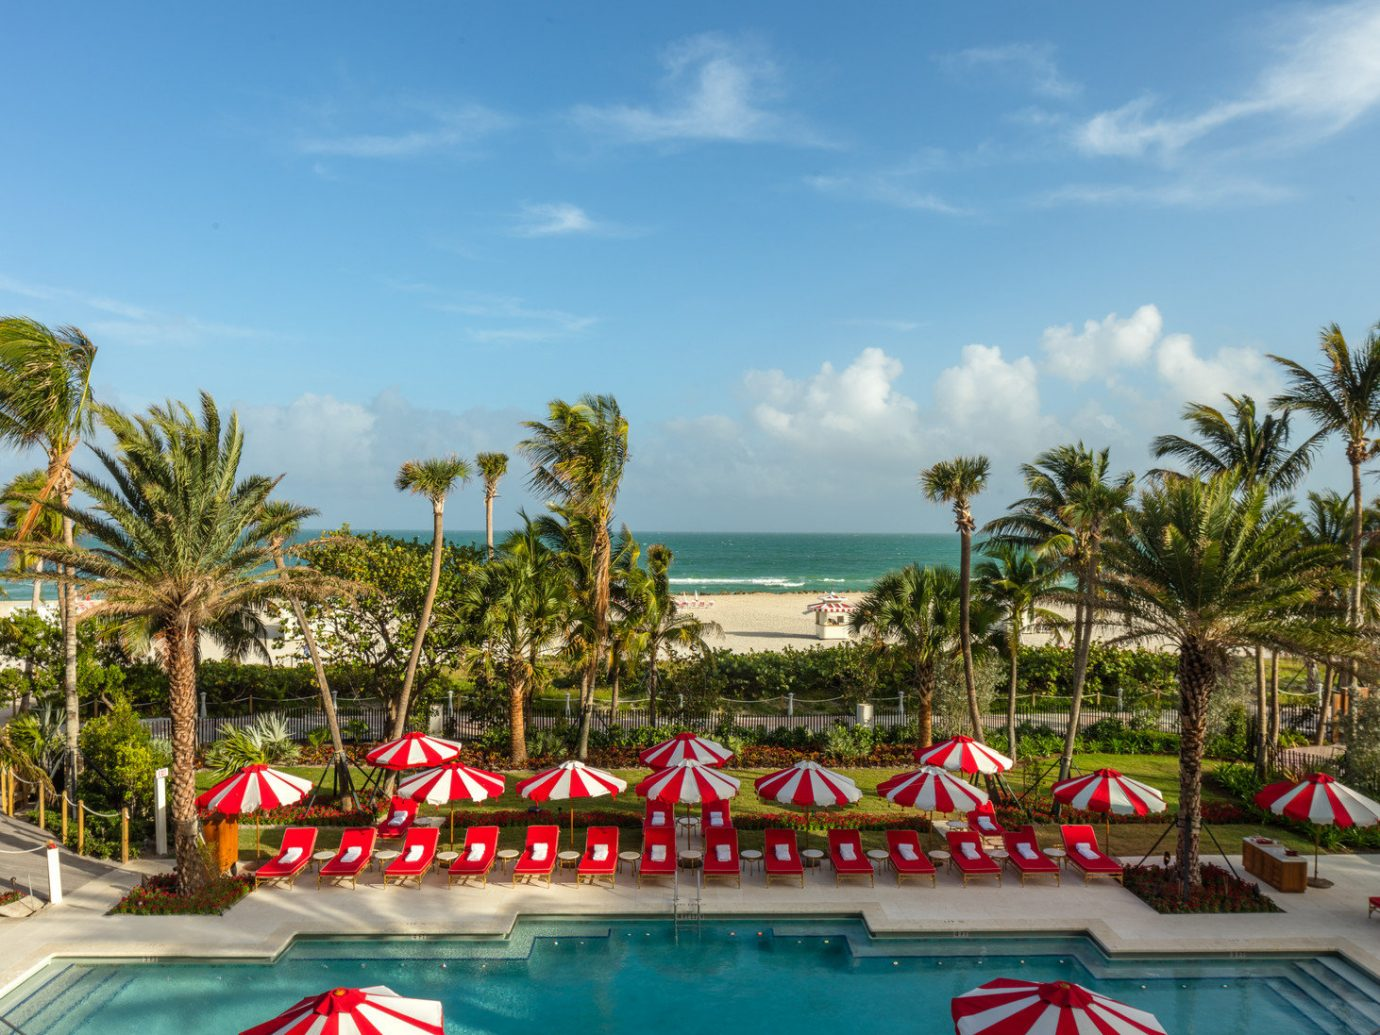 City Hotels Luxury Miami Miami Beach Romance sky outdoor tree leisure swimming pool Resort vacation estate amusement park Beach Water park caribbean palm lined